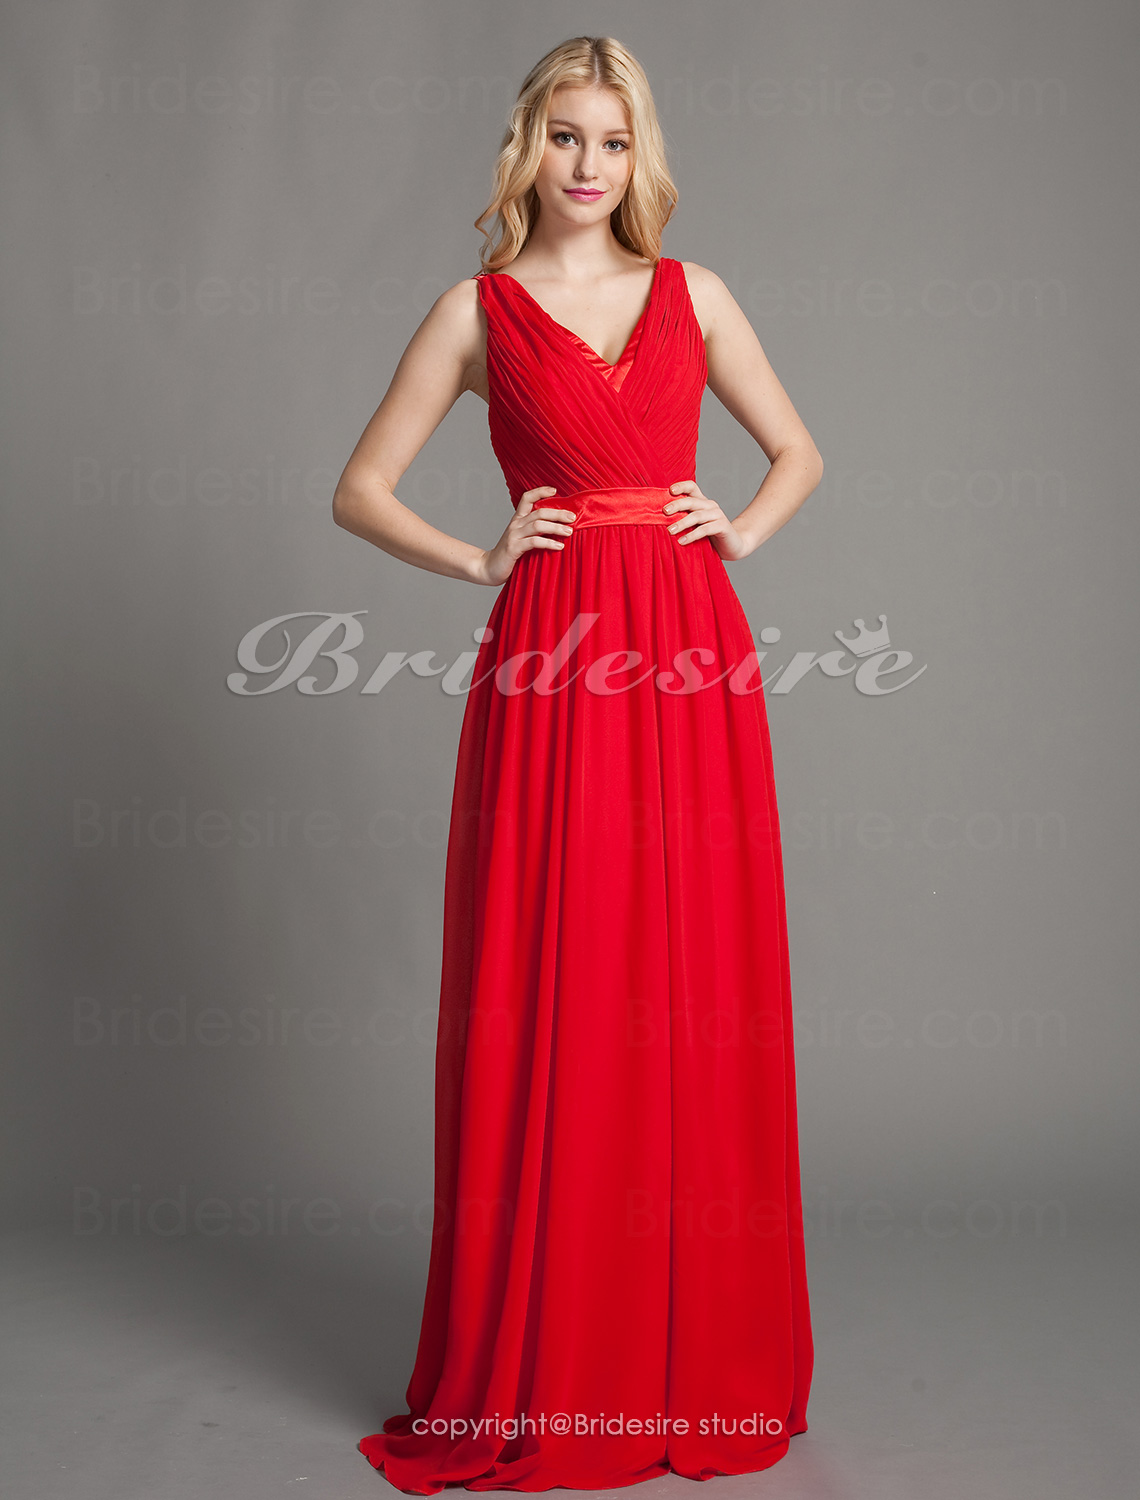 Stretch Satin Chiffon V-neck Floor-length Evening Dress inspired by Selena Gomez at the 83rd Oscar